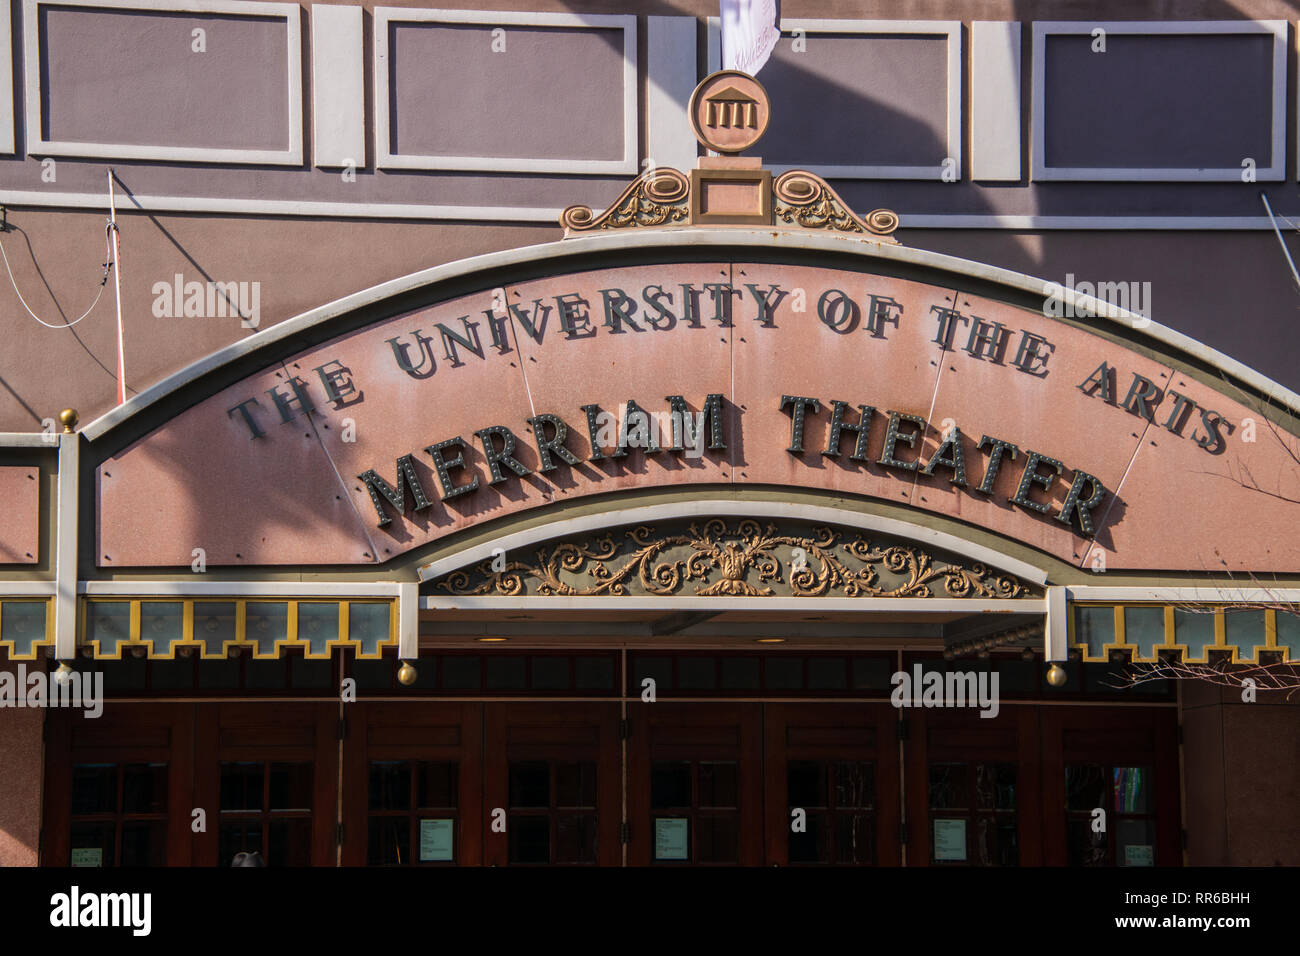 Philadelphia, Pennsylvania - February 5, 2019: The marquee of the famous Merriam Theater located on Broad Street in Philadelphia, Pennsylvania as seen - Stock Image